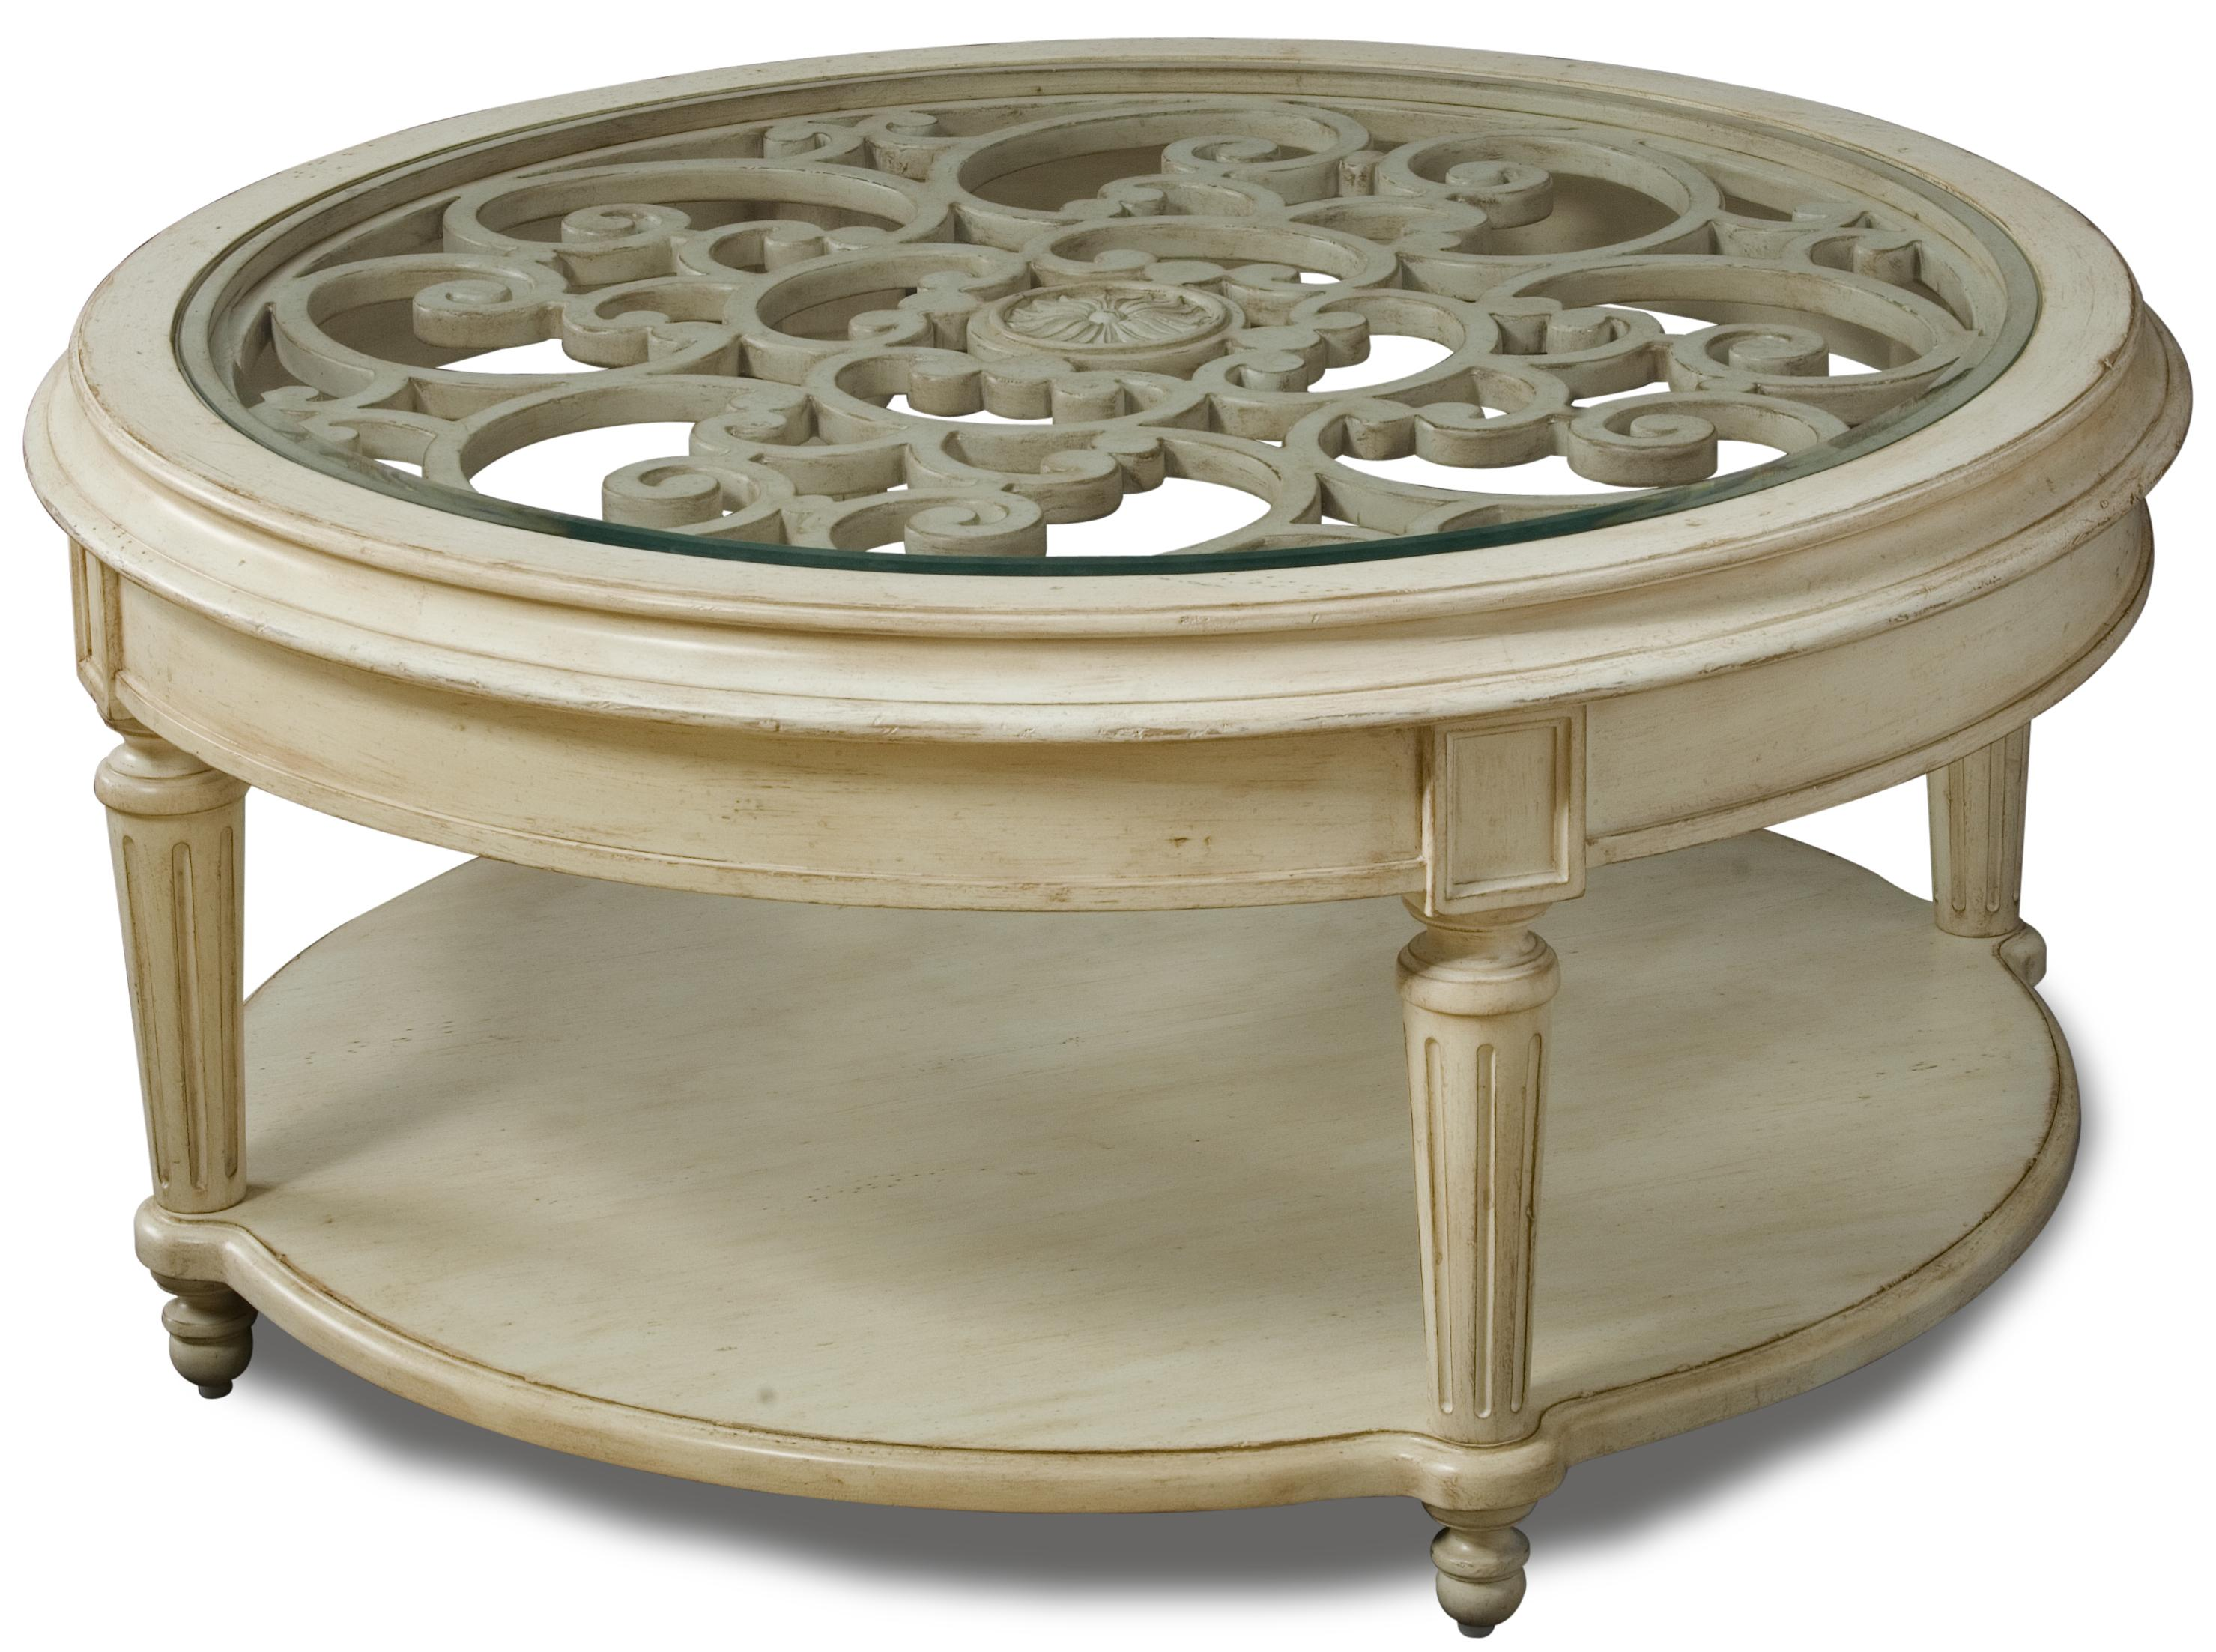 Carved Round Cocktail Table With Glass Top By A R T